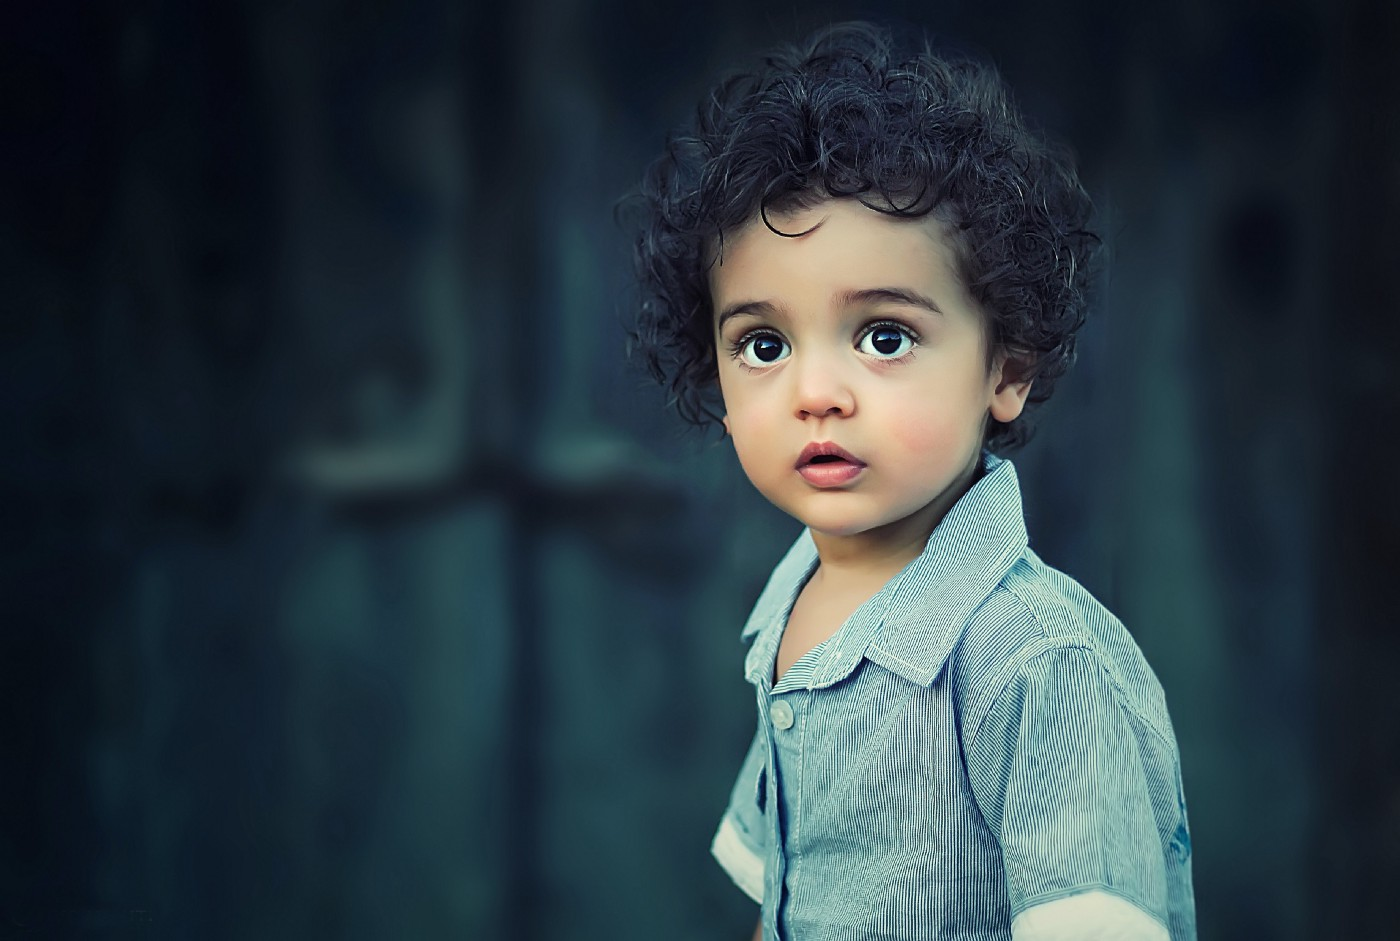 Toddler with brown hair staring at the camera. Dark blue wall in the background. Toddler is wearing a blue shirt.